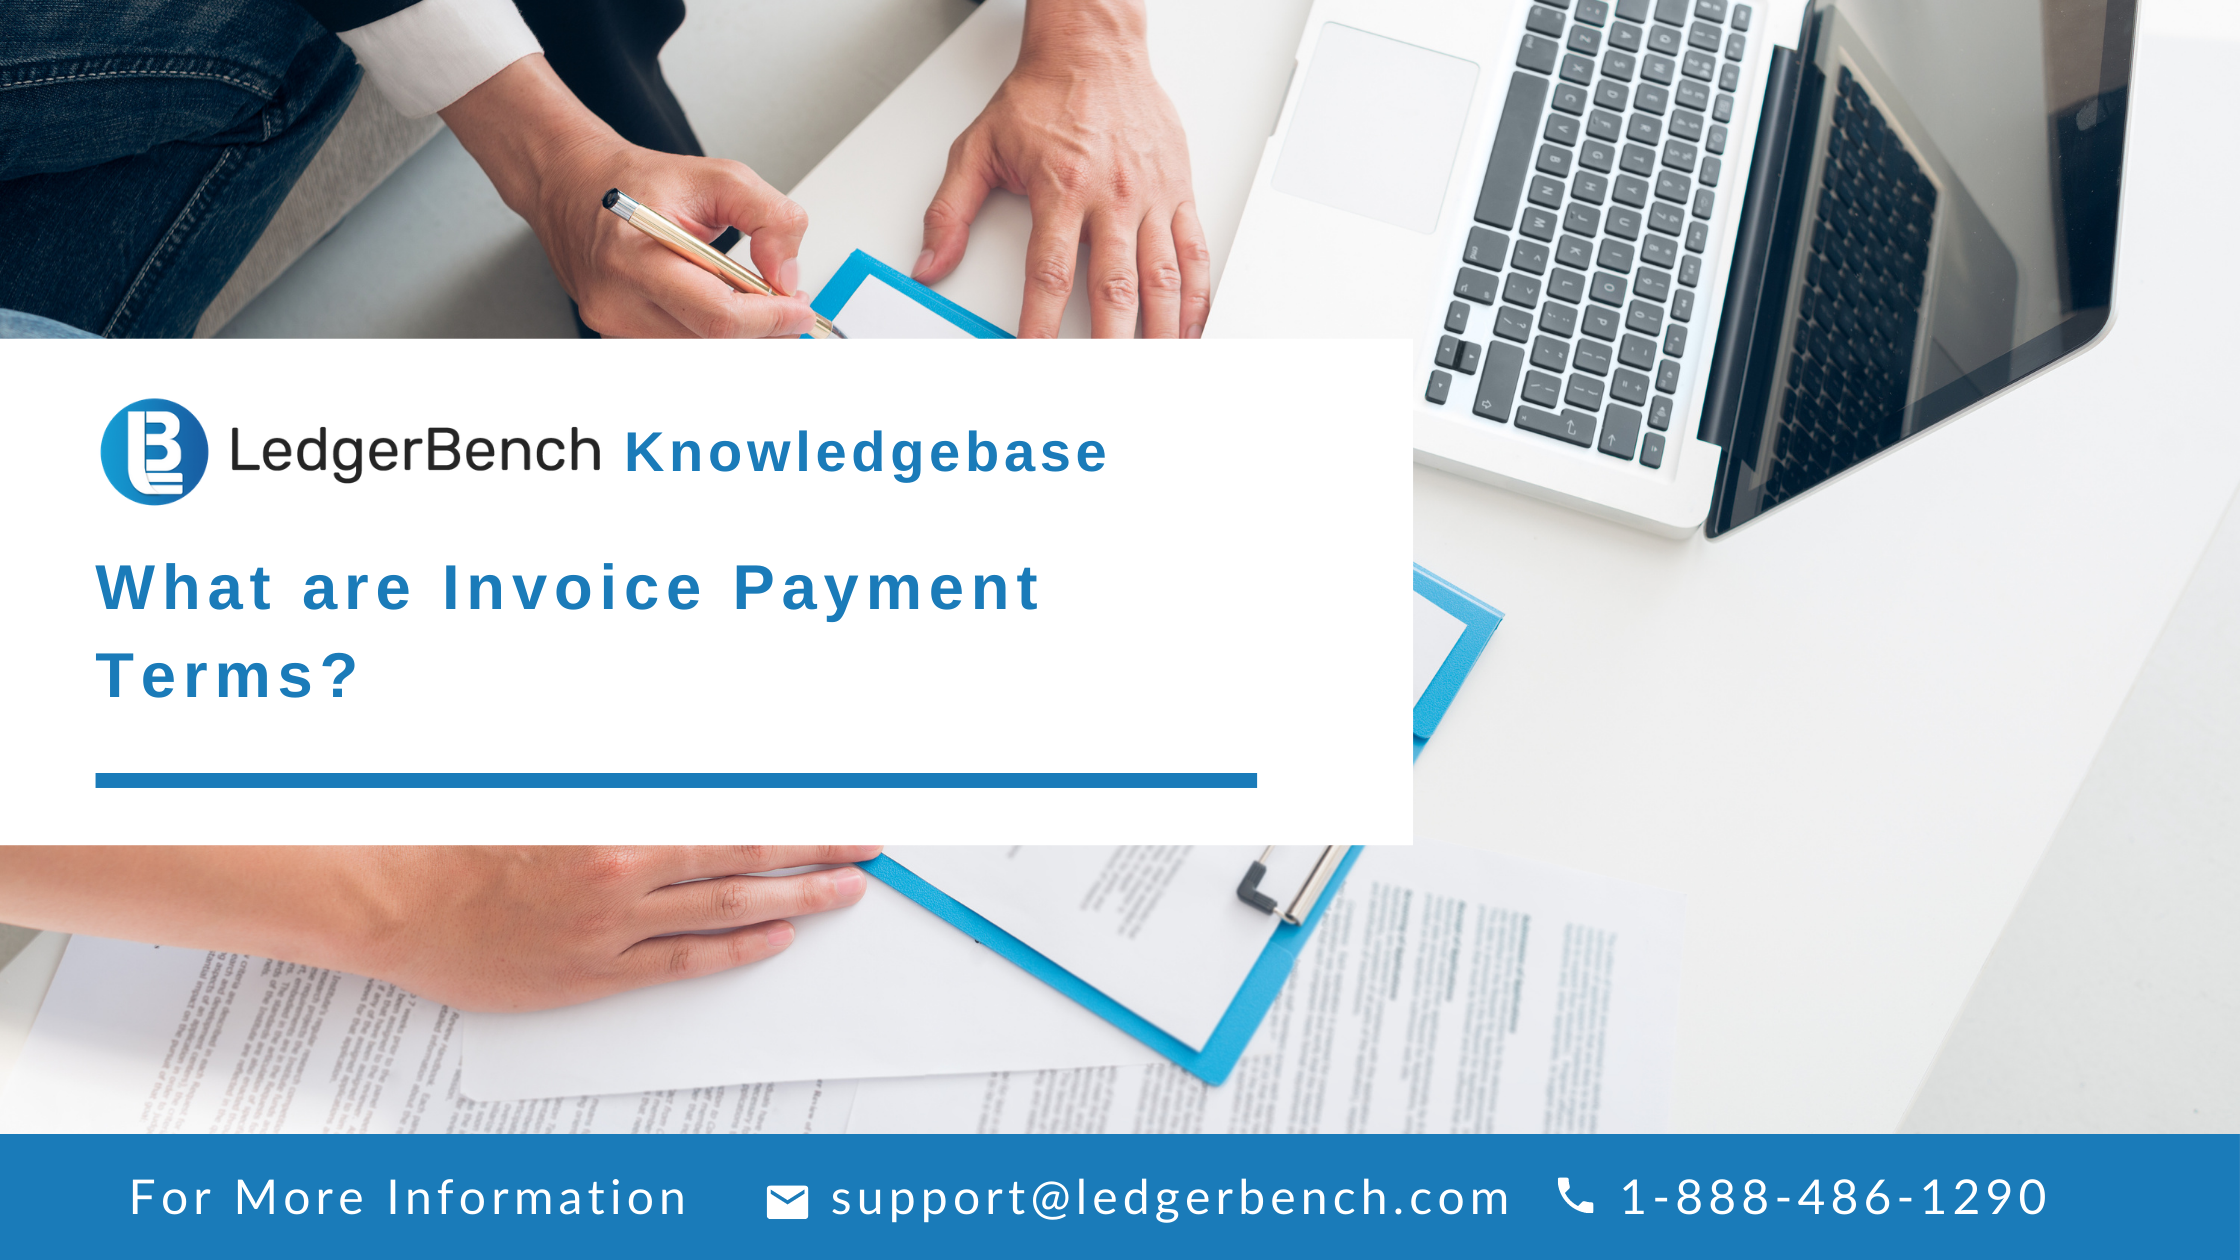 What are Invoice Payment Terms